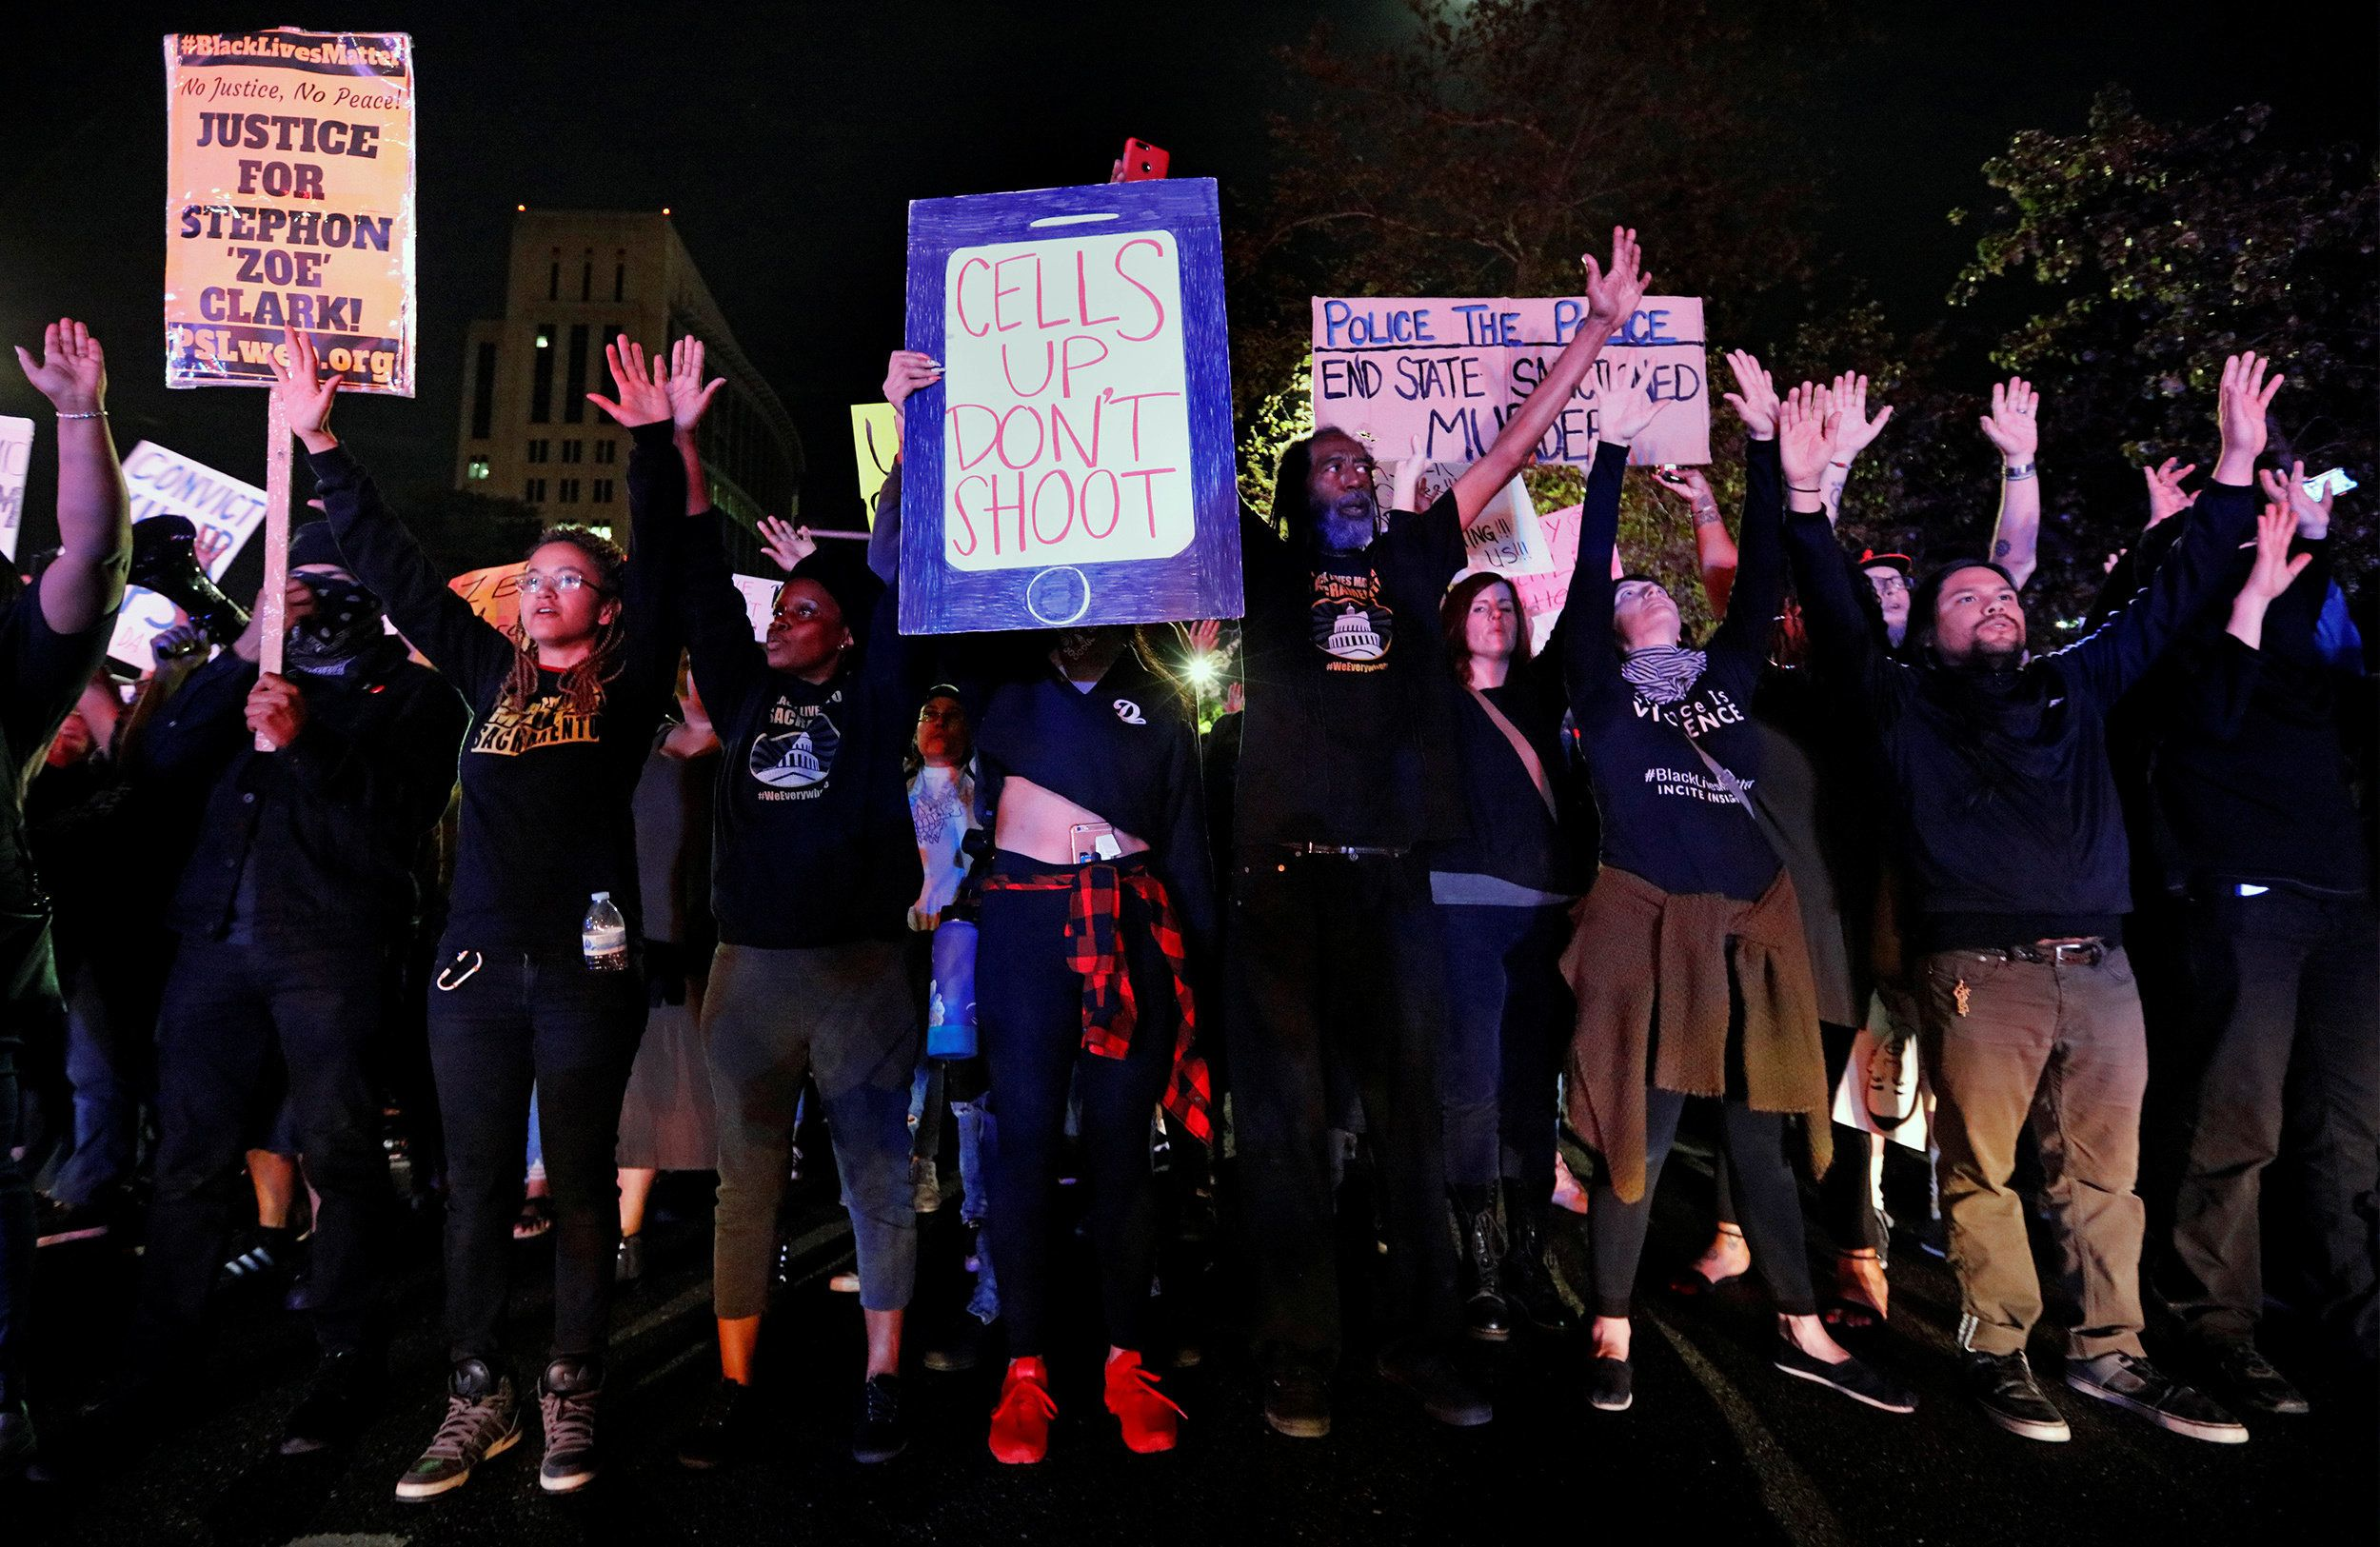 Demonstrators protest the police shooting of Stephon Clark, in Sacramento, California, U.S., March 30, 2018.  REUTERS/Bob Strong